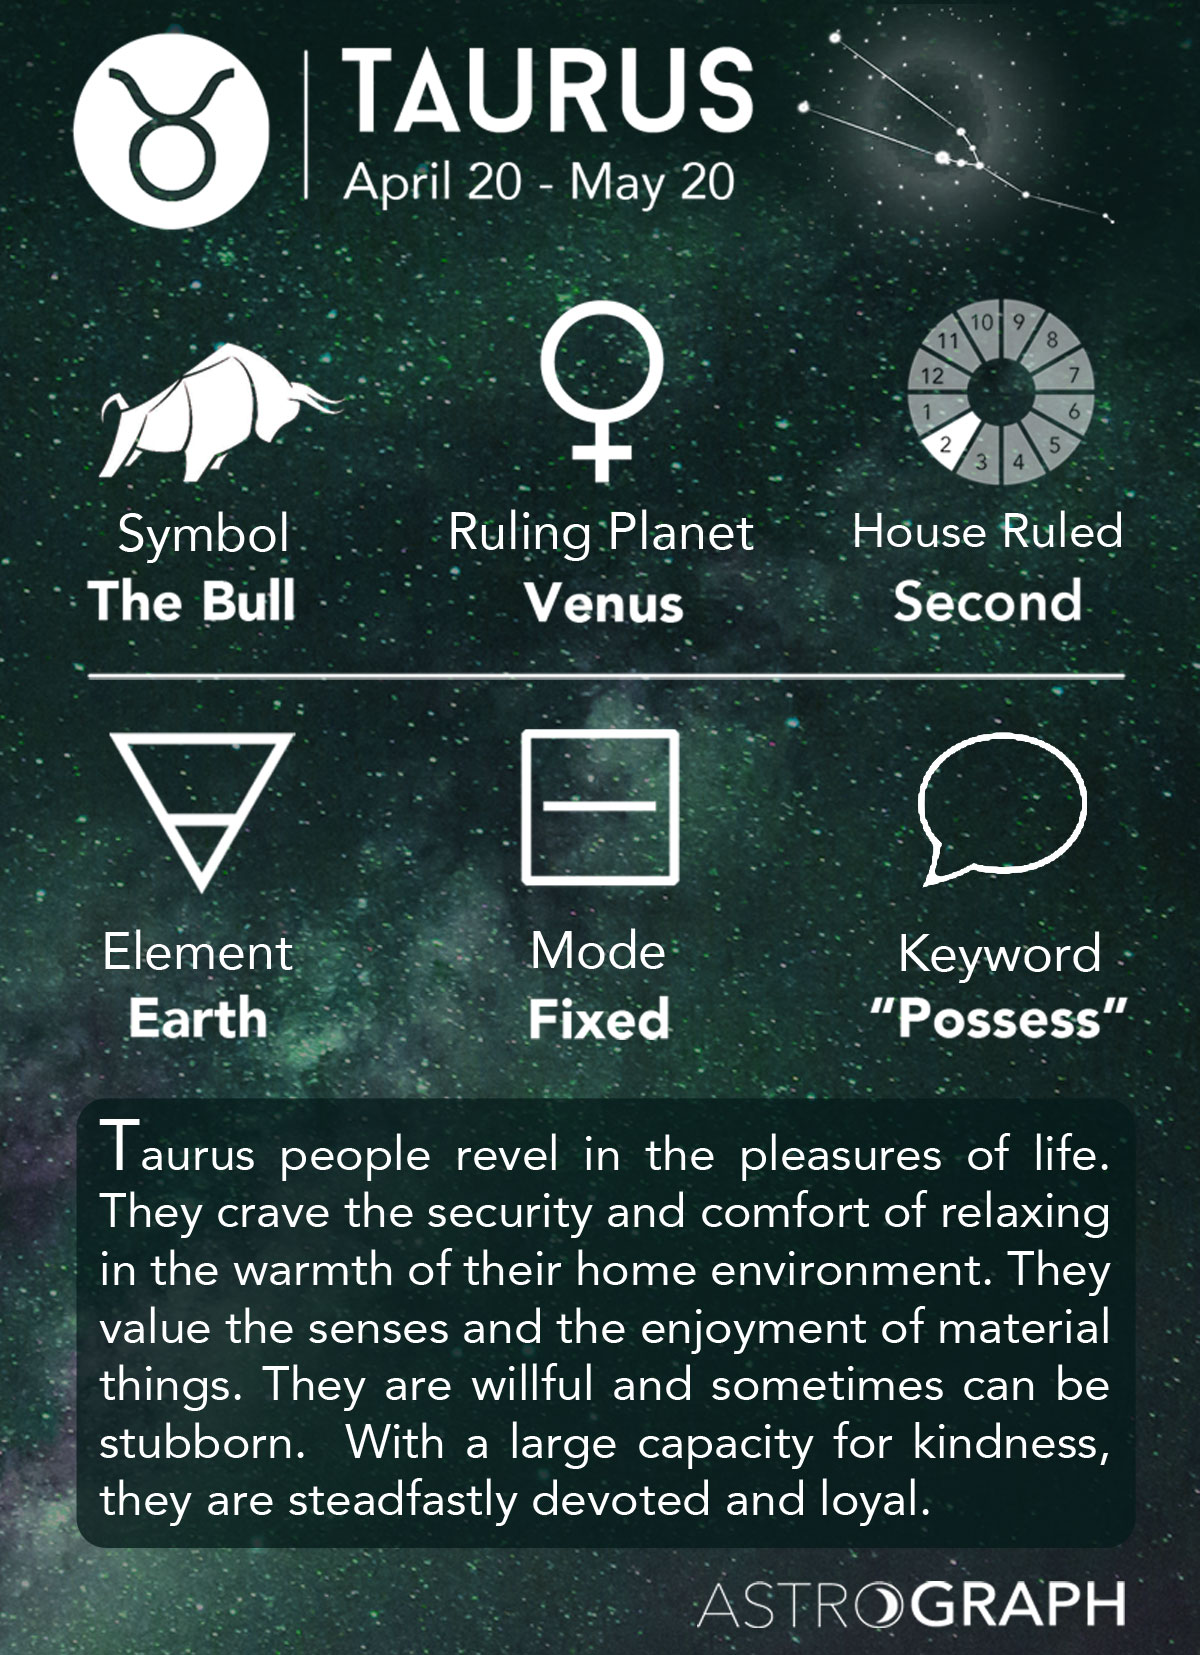 A Summary of the Taurus Zodiac Sign